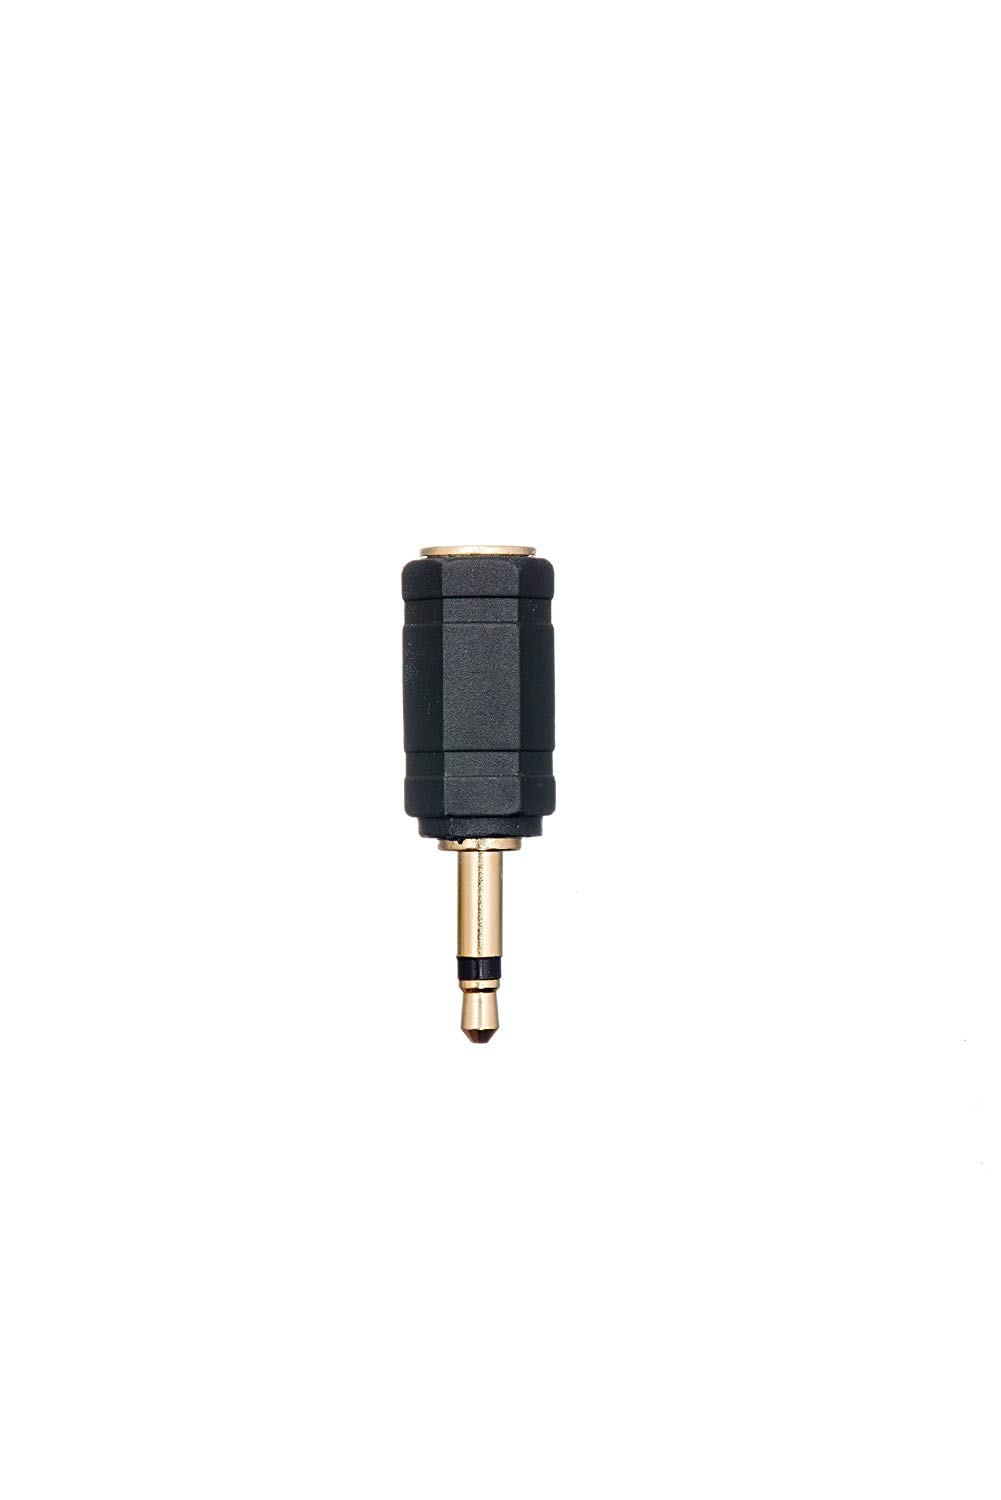 PocketWizard 804-609 MSMM Miniphone Cable Adapter (Black)